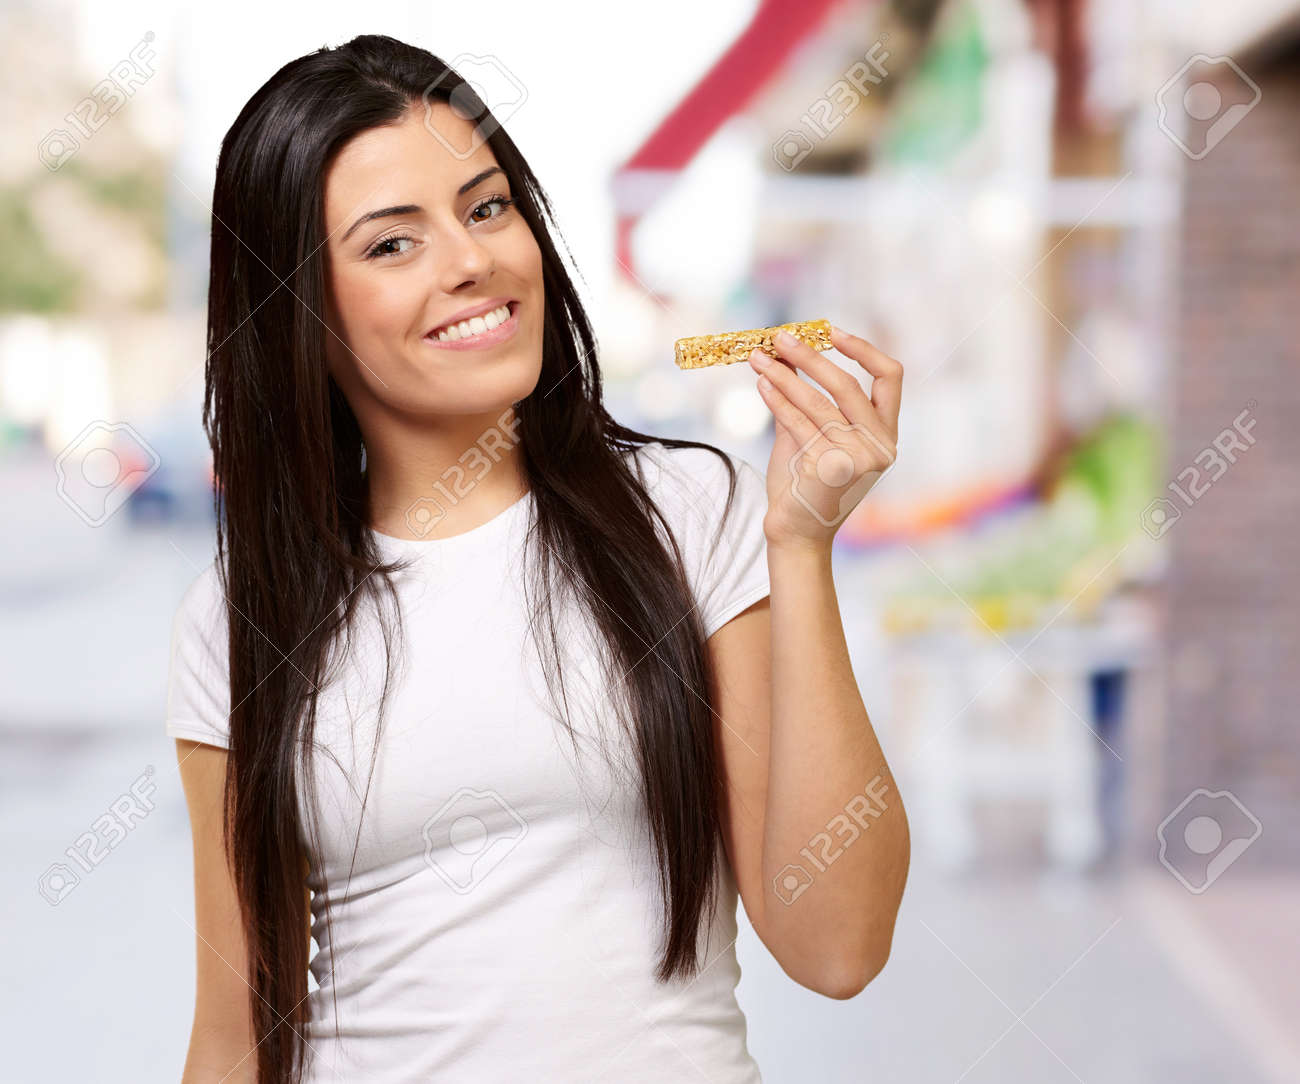 portrait of young woman eating cereal bar at street - 16140150